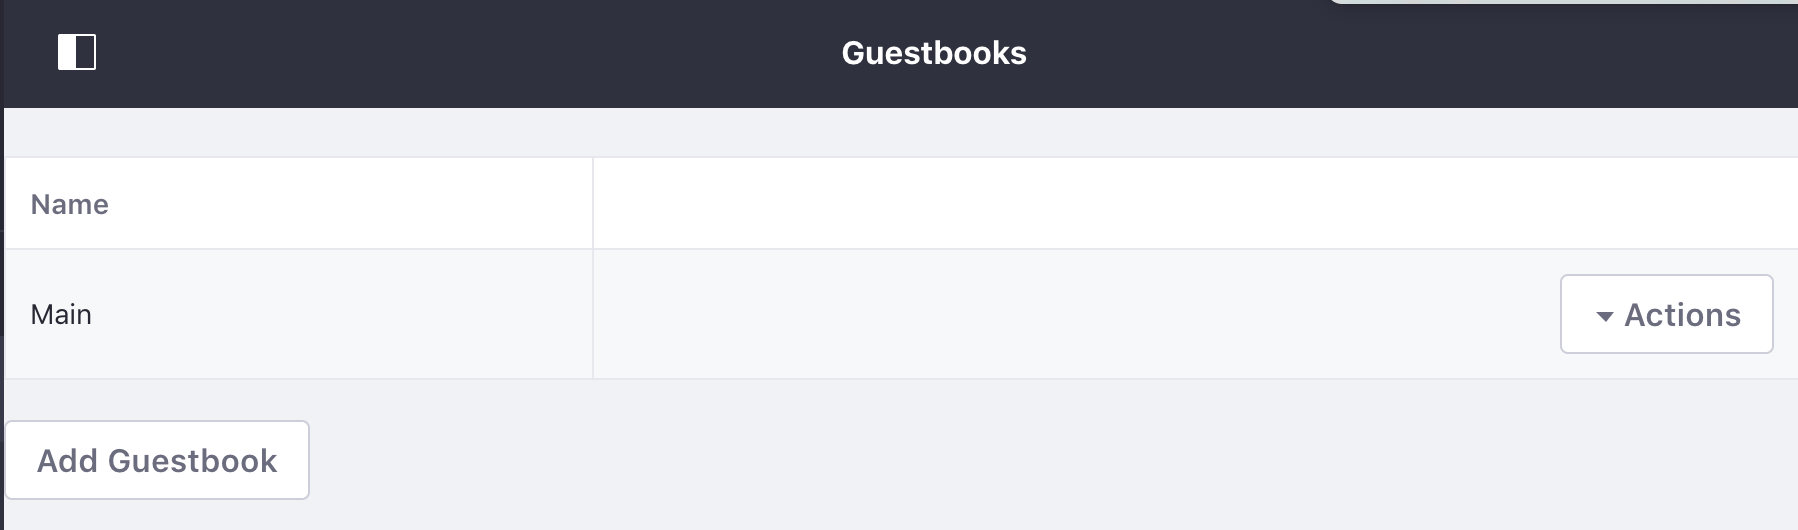 Figure 1: The Guestbook Admin portlet lets administrators manage Guestbooks.